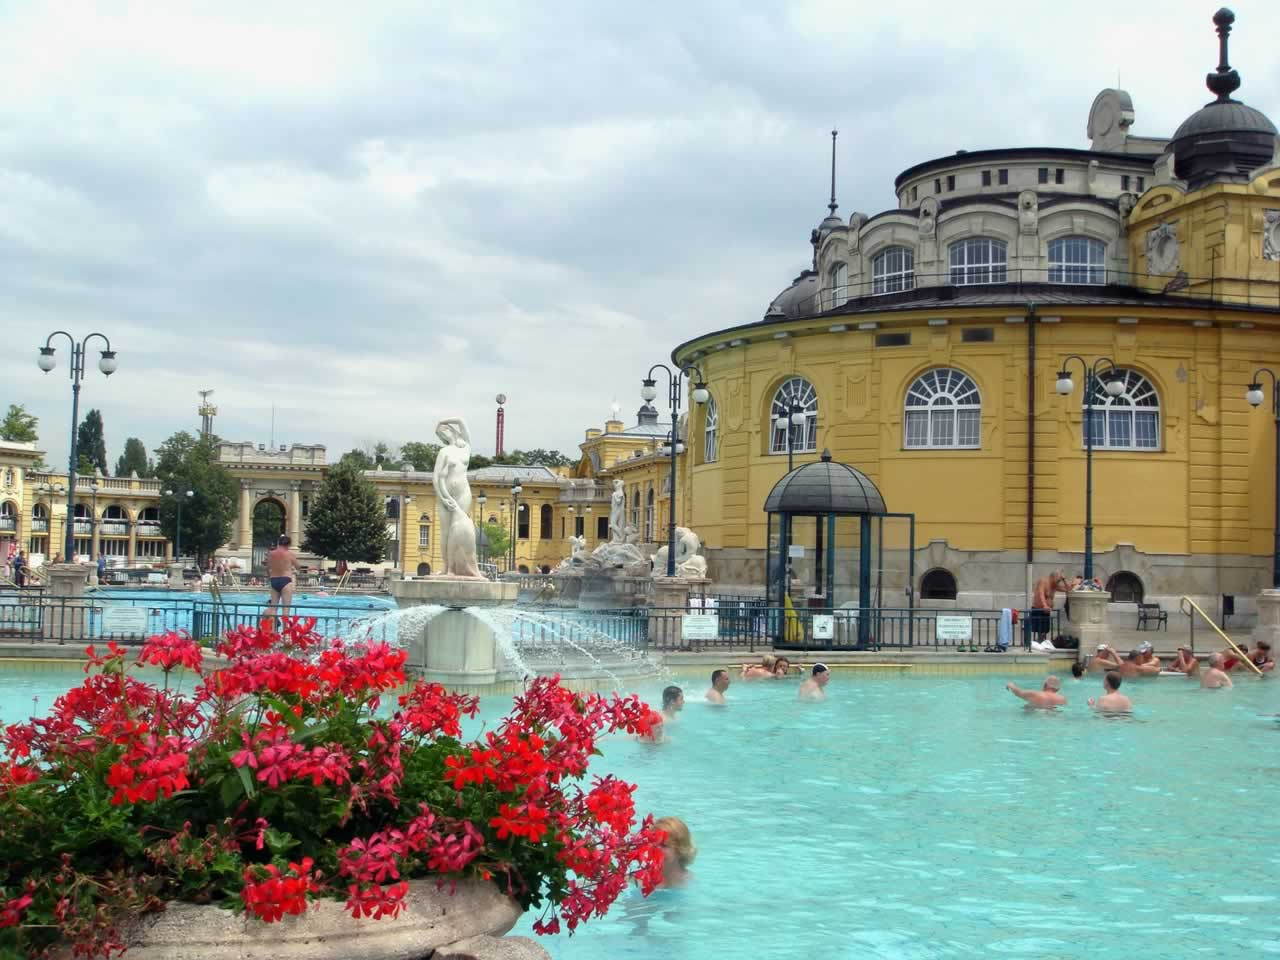 Szechenyi thermal bath the best spa experience in budapest for A list salon budapest